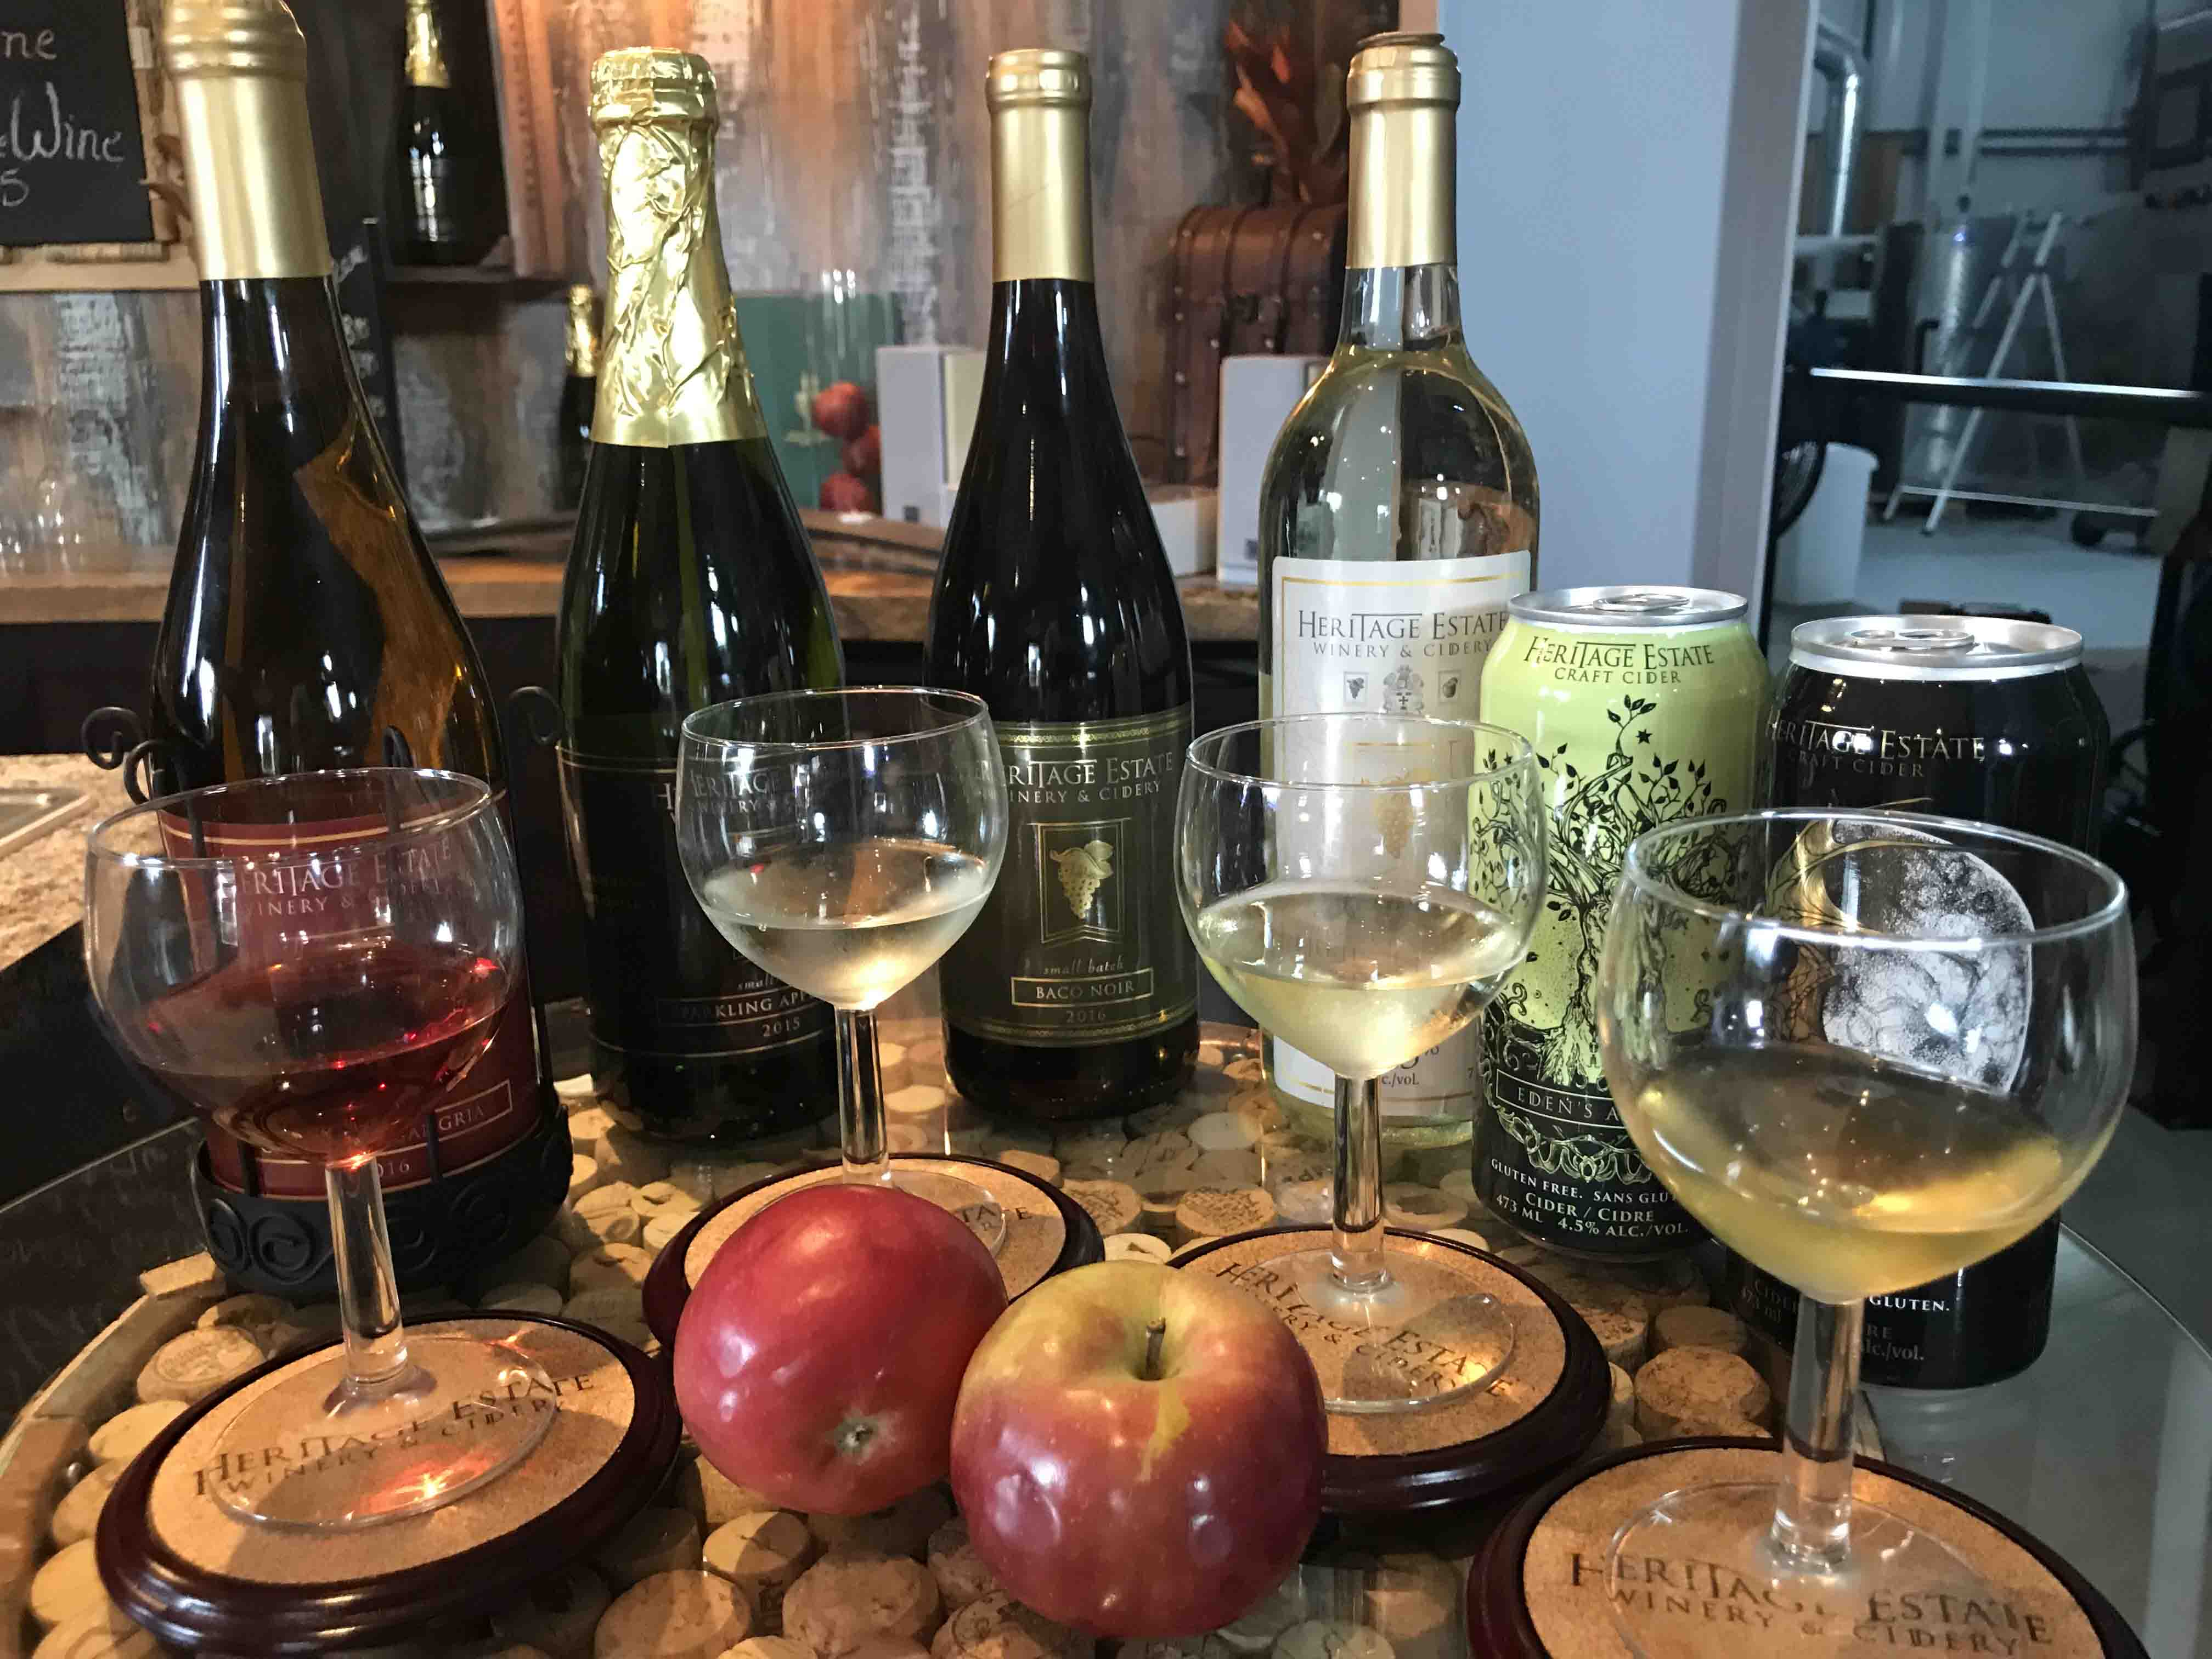 A fine selection of Ciders at Heritage Estate Winery Cidery copy - A Sweet Treat Tour Of Ontario's Lake Country